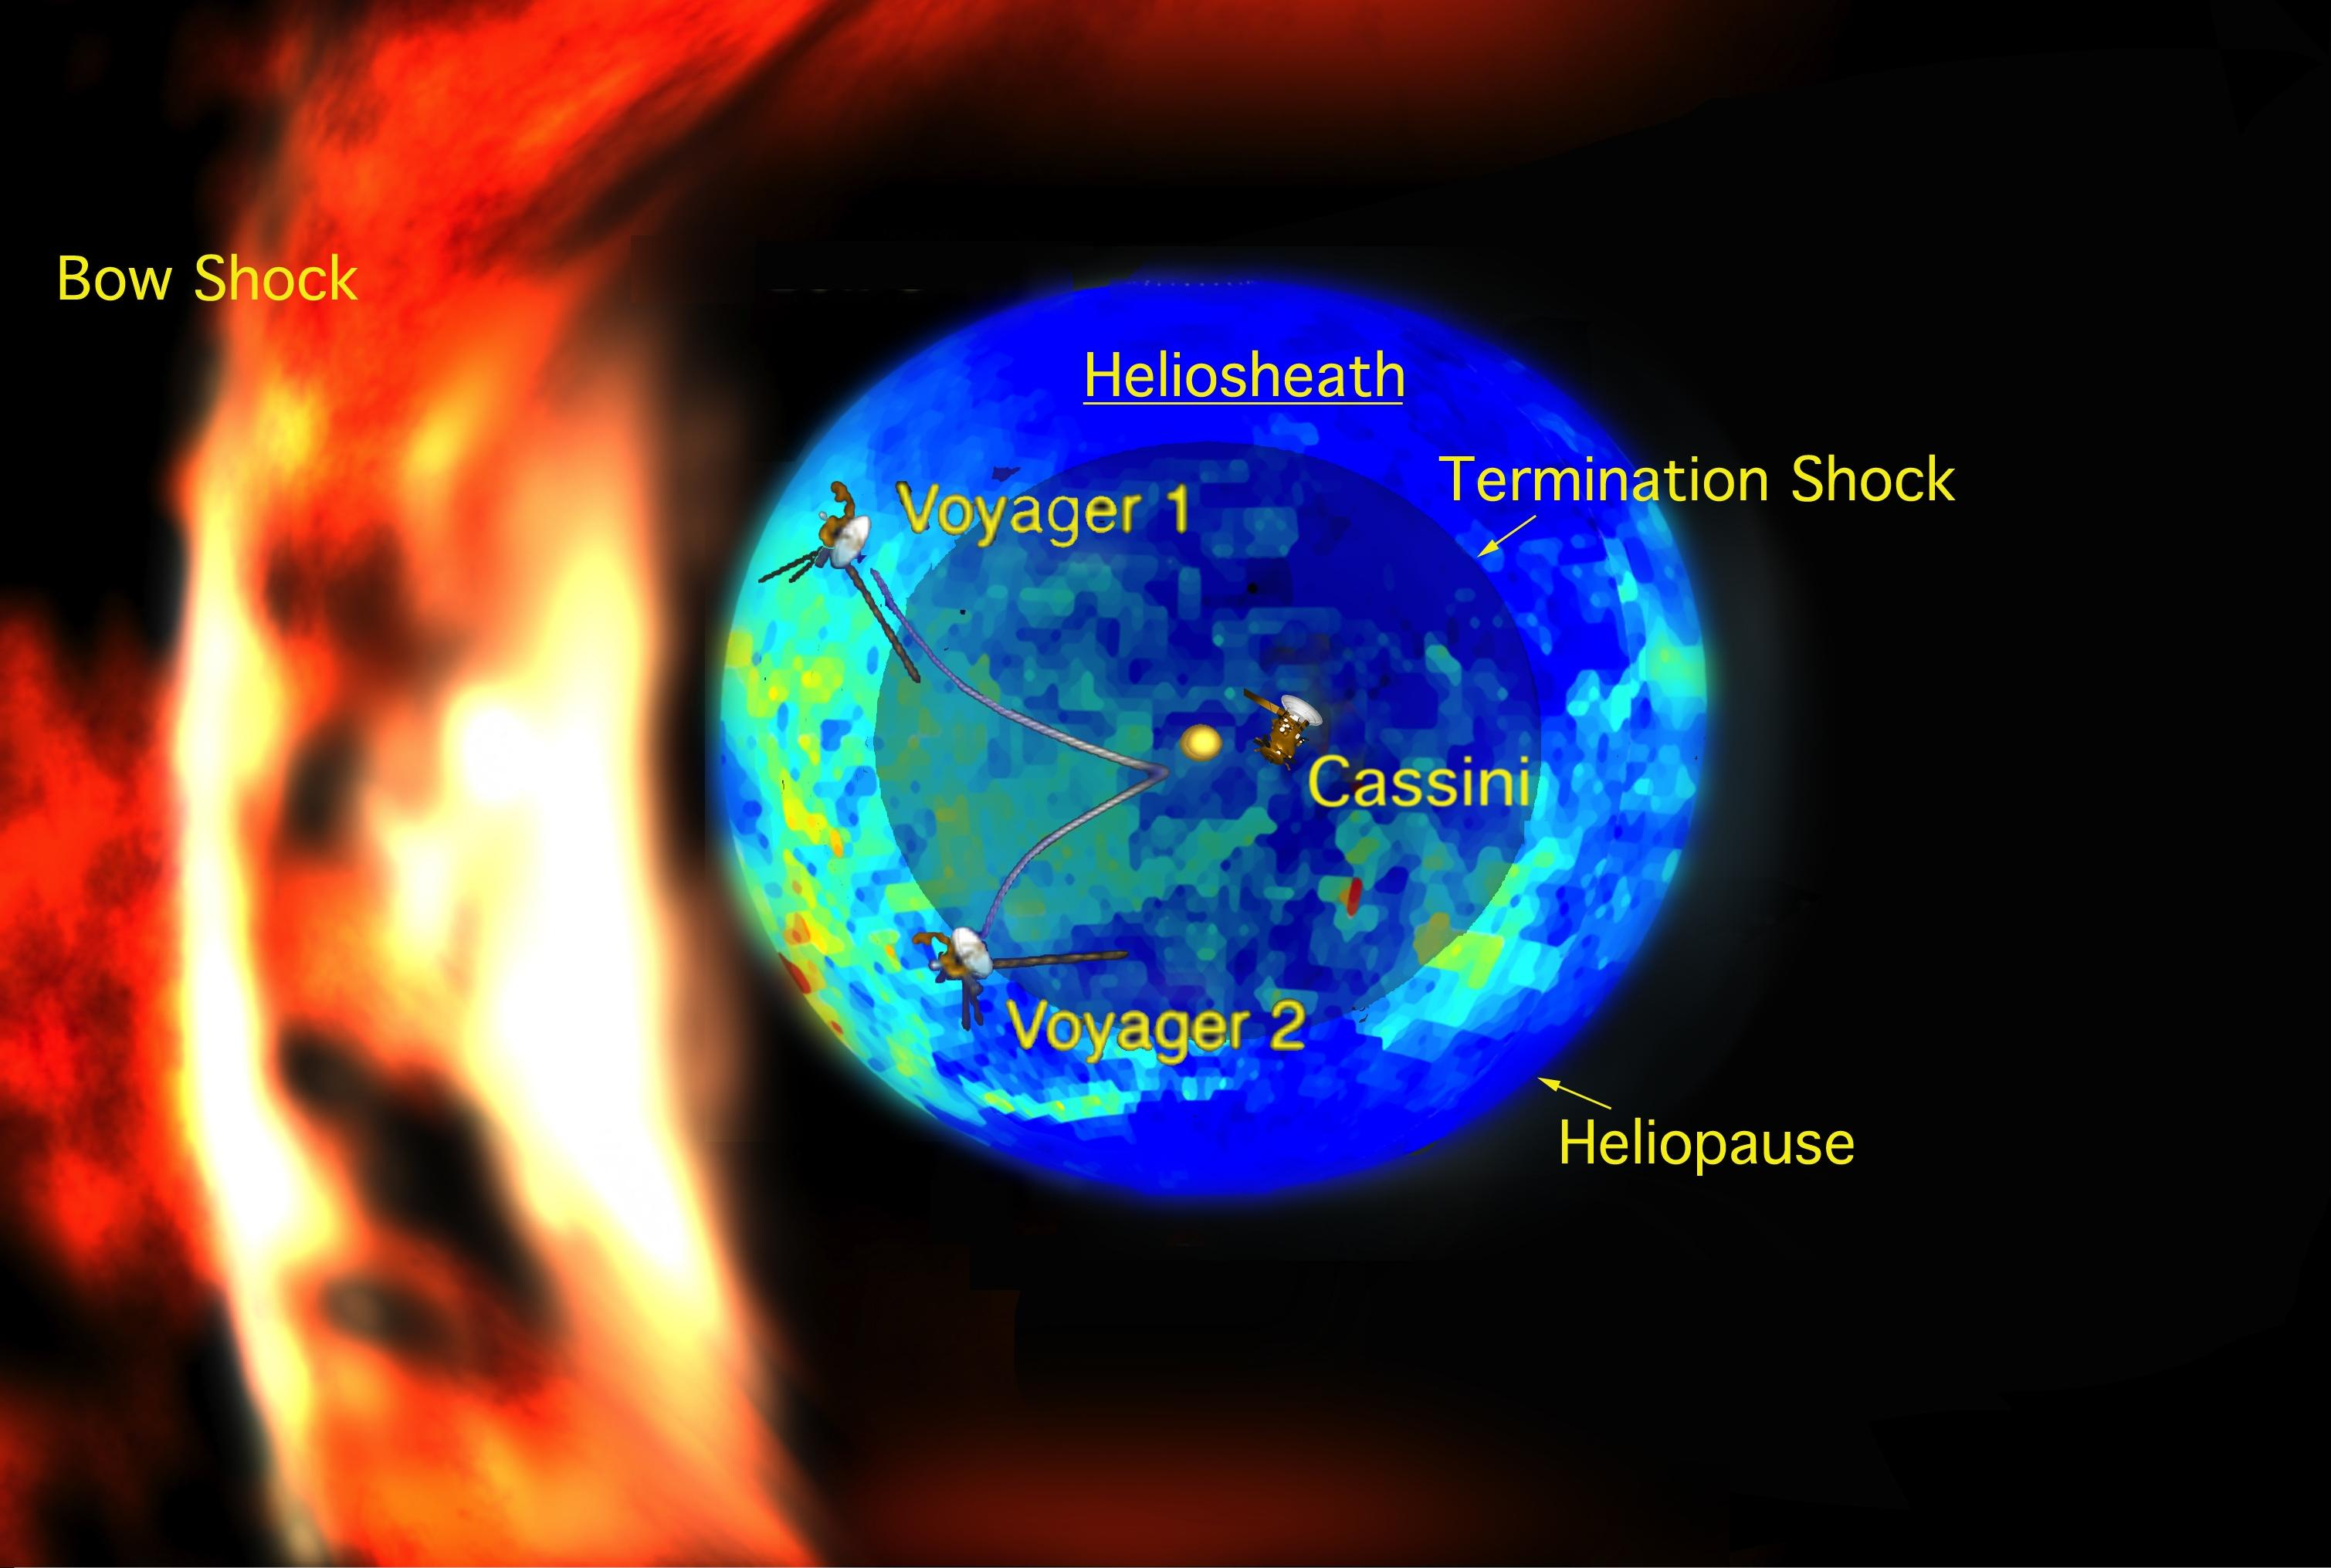 In this illustration, the multicolored (blue and green) bubble represents the new measurements of the emission of particles known as energetic neutral atoms. The energetic neutral atoms were streaming in from the thick boundary known as the heliosheath. The heliosheath is the region between the heliosphere, the region of our sun's influence, and the interstellar medium, the matter between stars in our galaxy. Areas in red indicate the hottest, most high-pressure regions and purple the coolest, lowest-pressure regions. Credit: NASA/JPL/JHUAPL